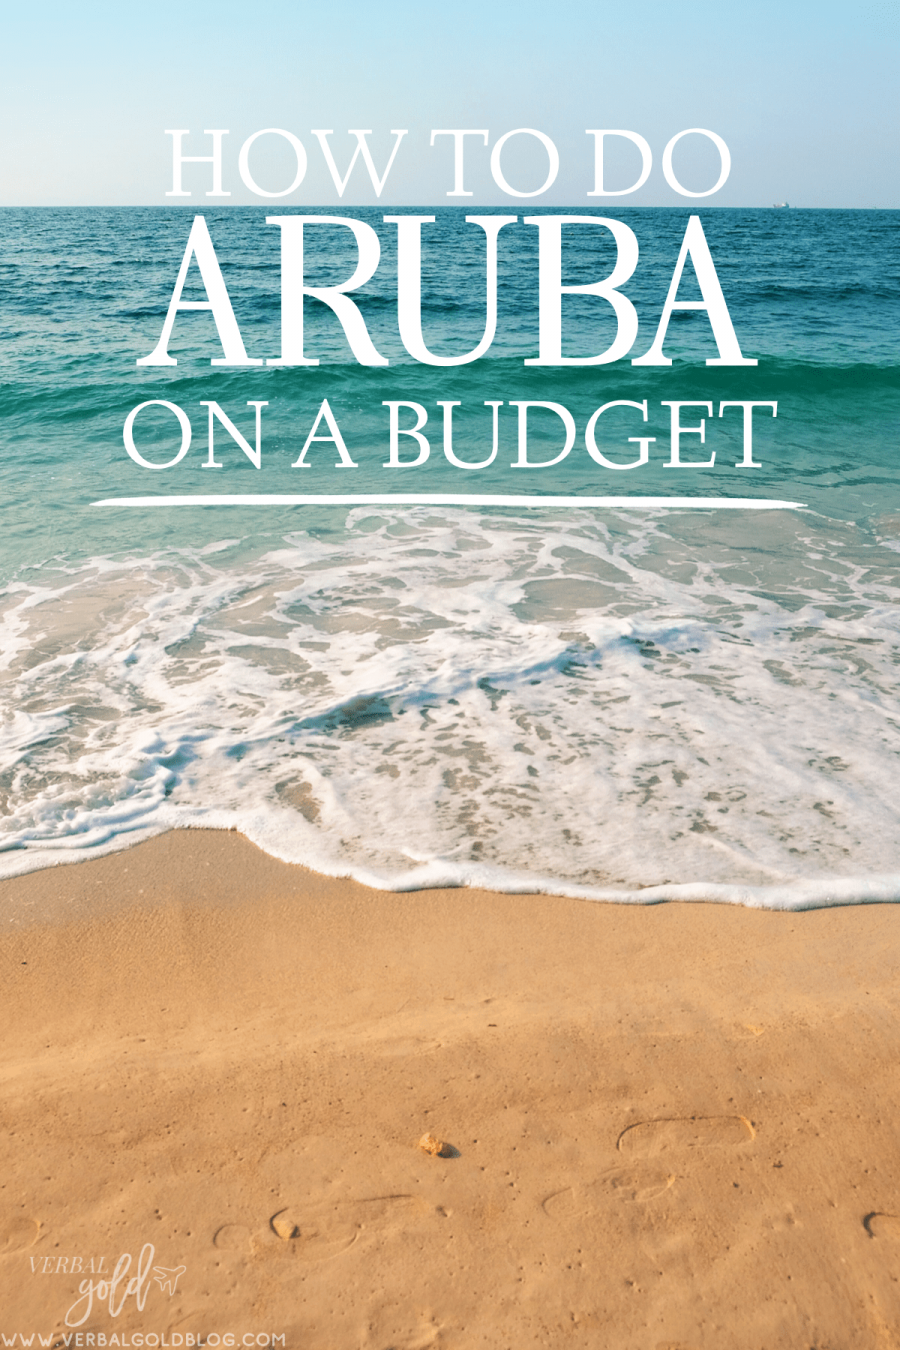 Aruba on a budget? It's possible! In this travel guide to Aruba, I share how to plan a trip to Aruba on a budget